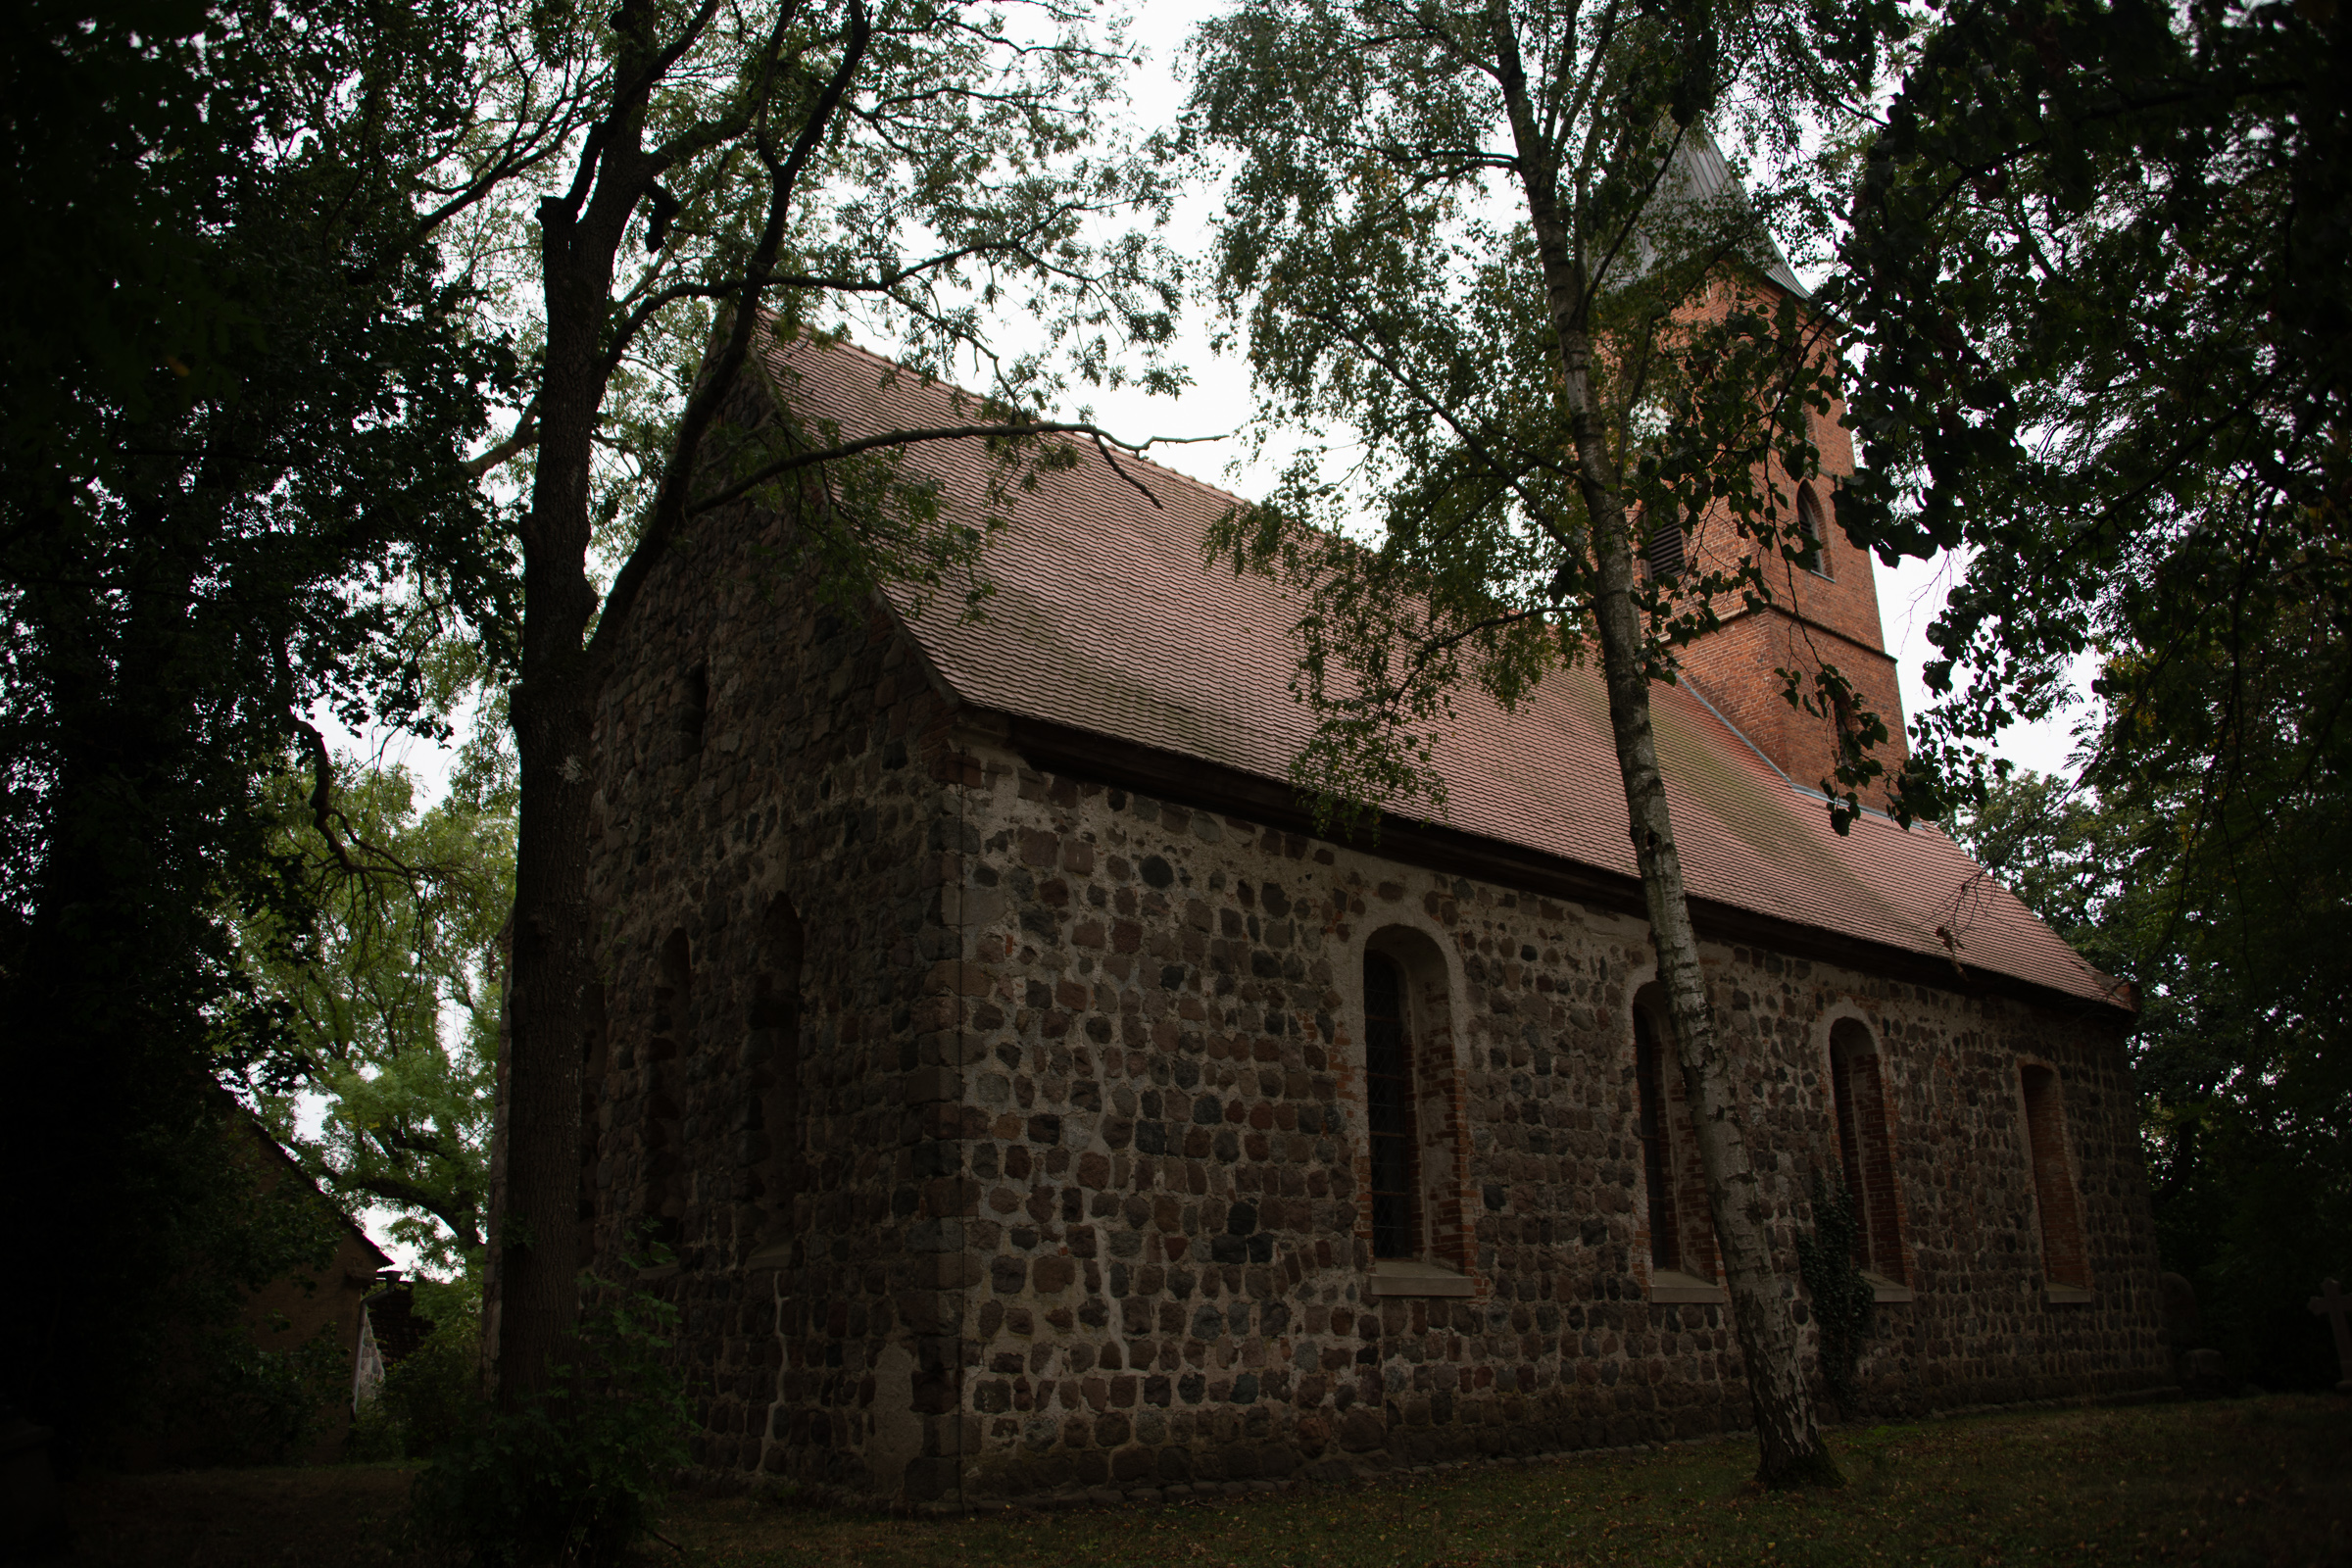 The Strassburg/Behnke church in Wallmow